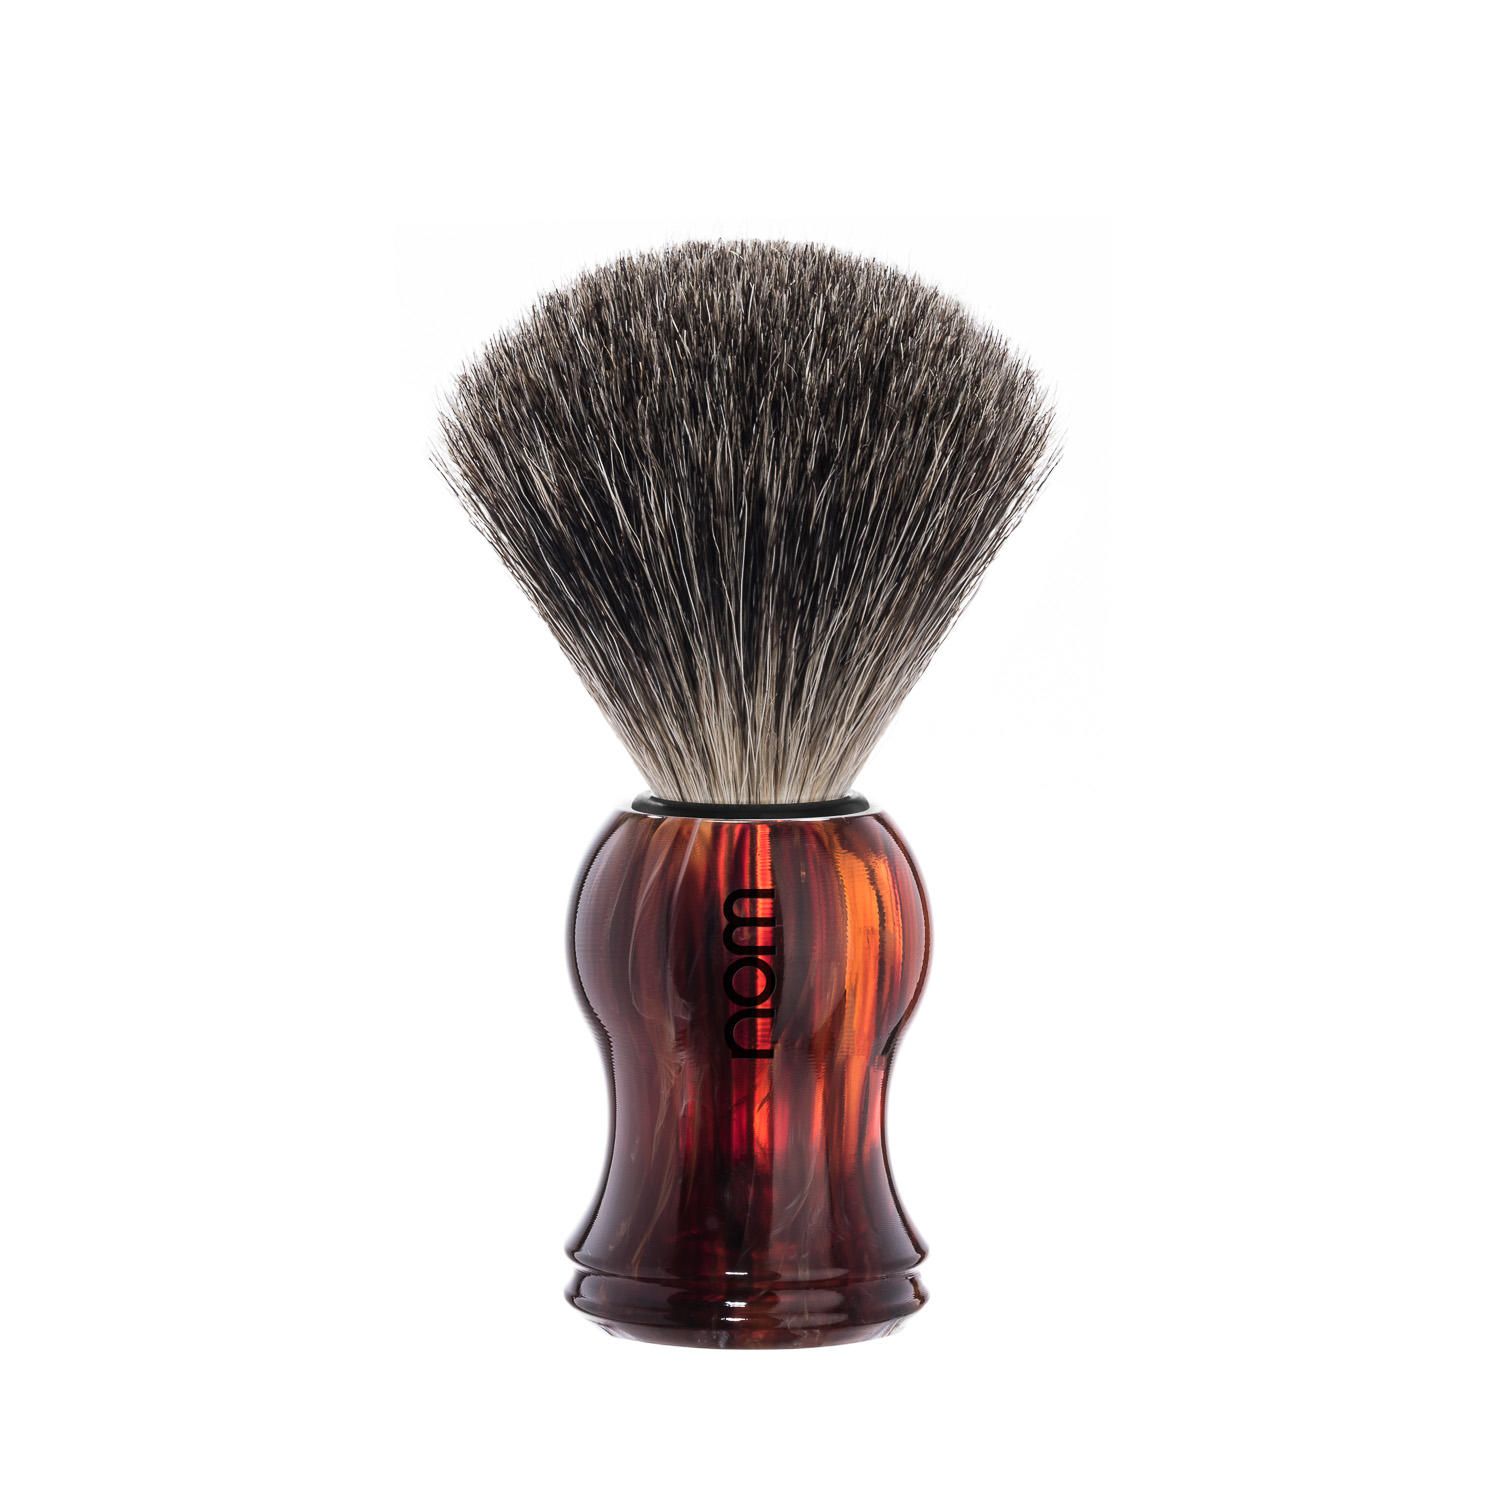 GUSTAV81HA nom, GUSTAV havanna, pure badger shaving brush